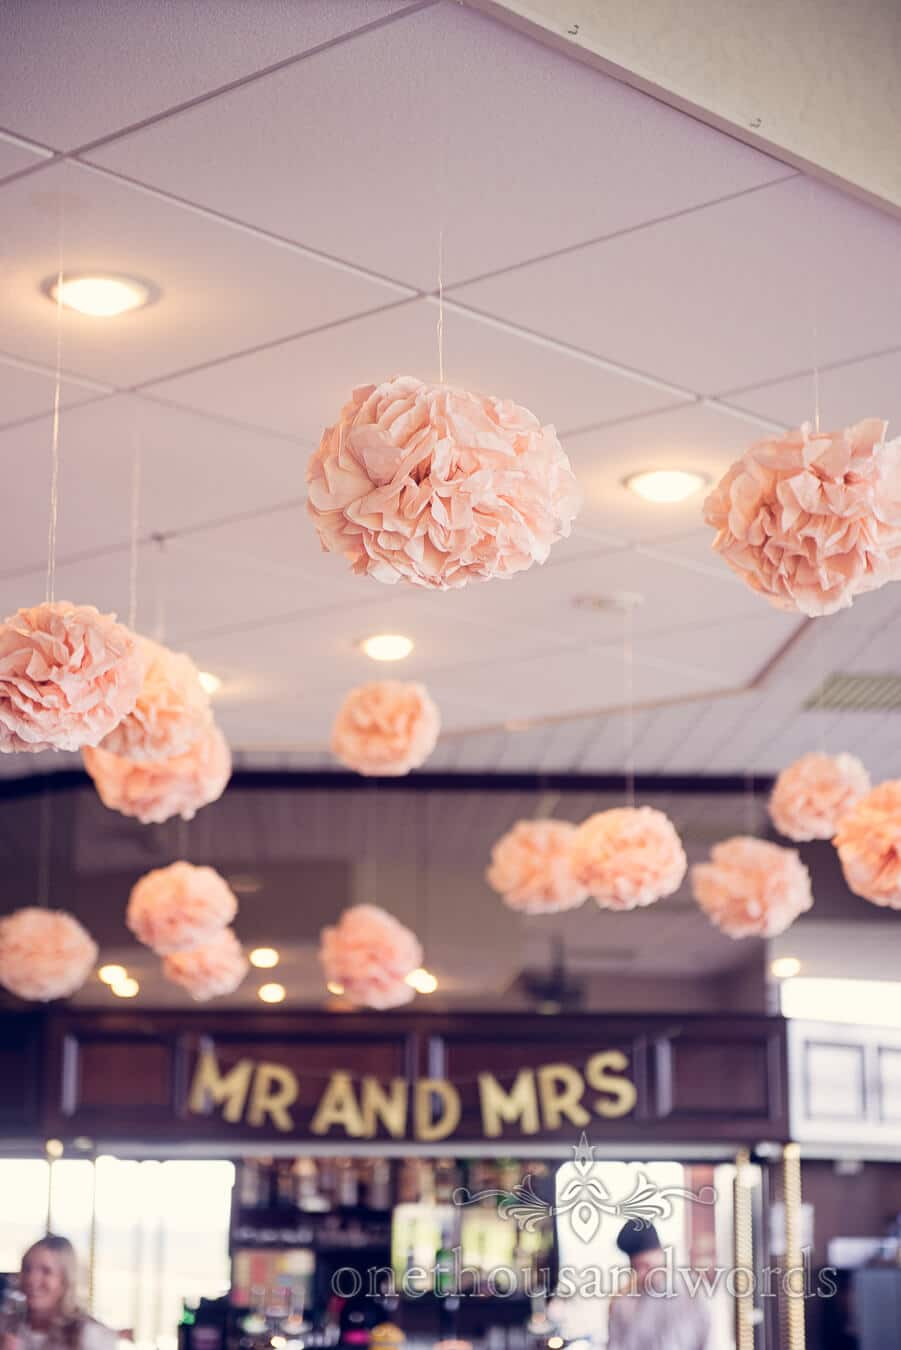 Hanging decorations and signage at Purbeck Golf Club Wedding